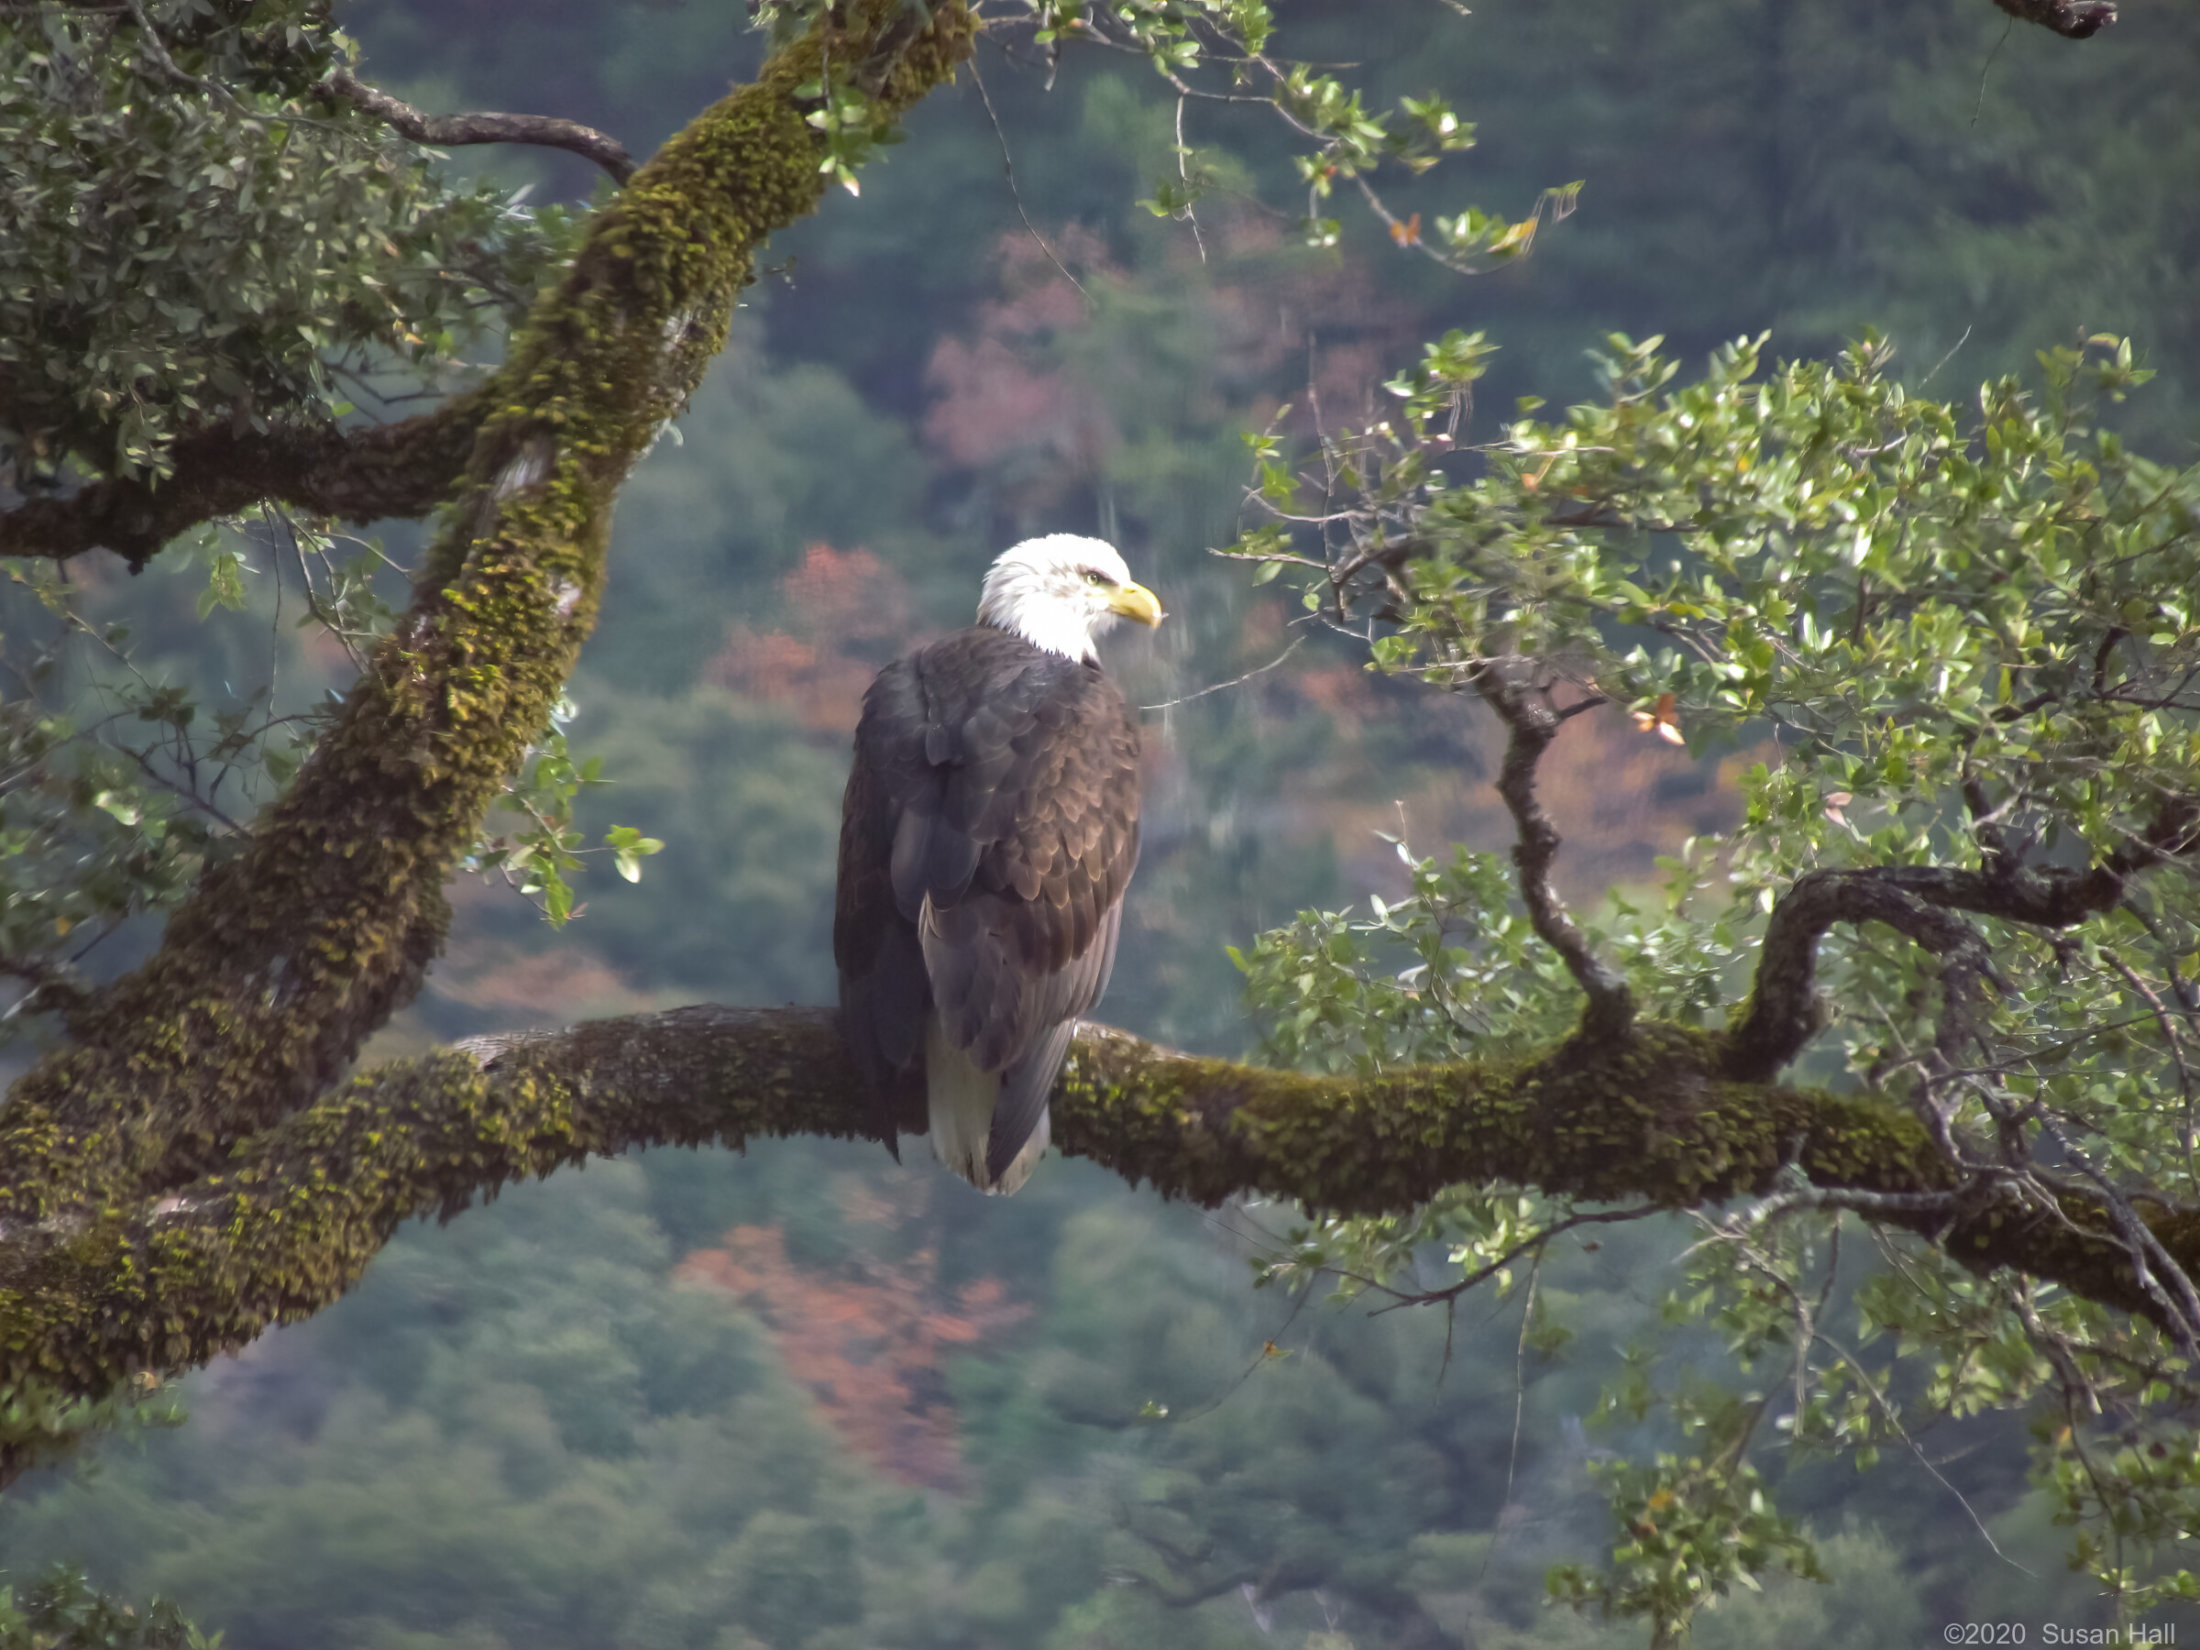 Another eagle along the river